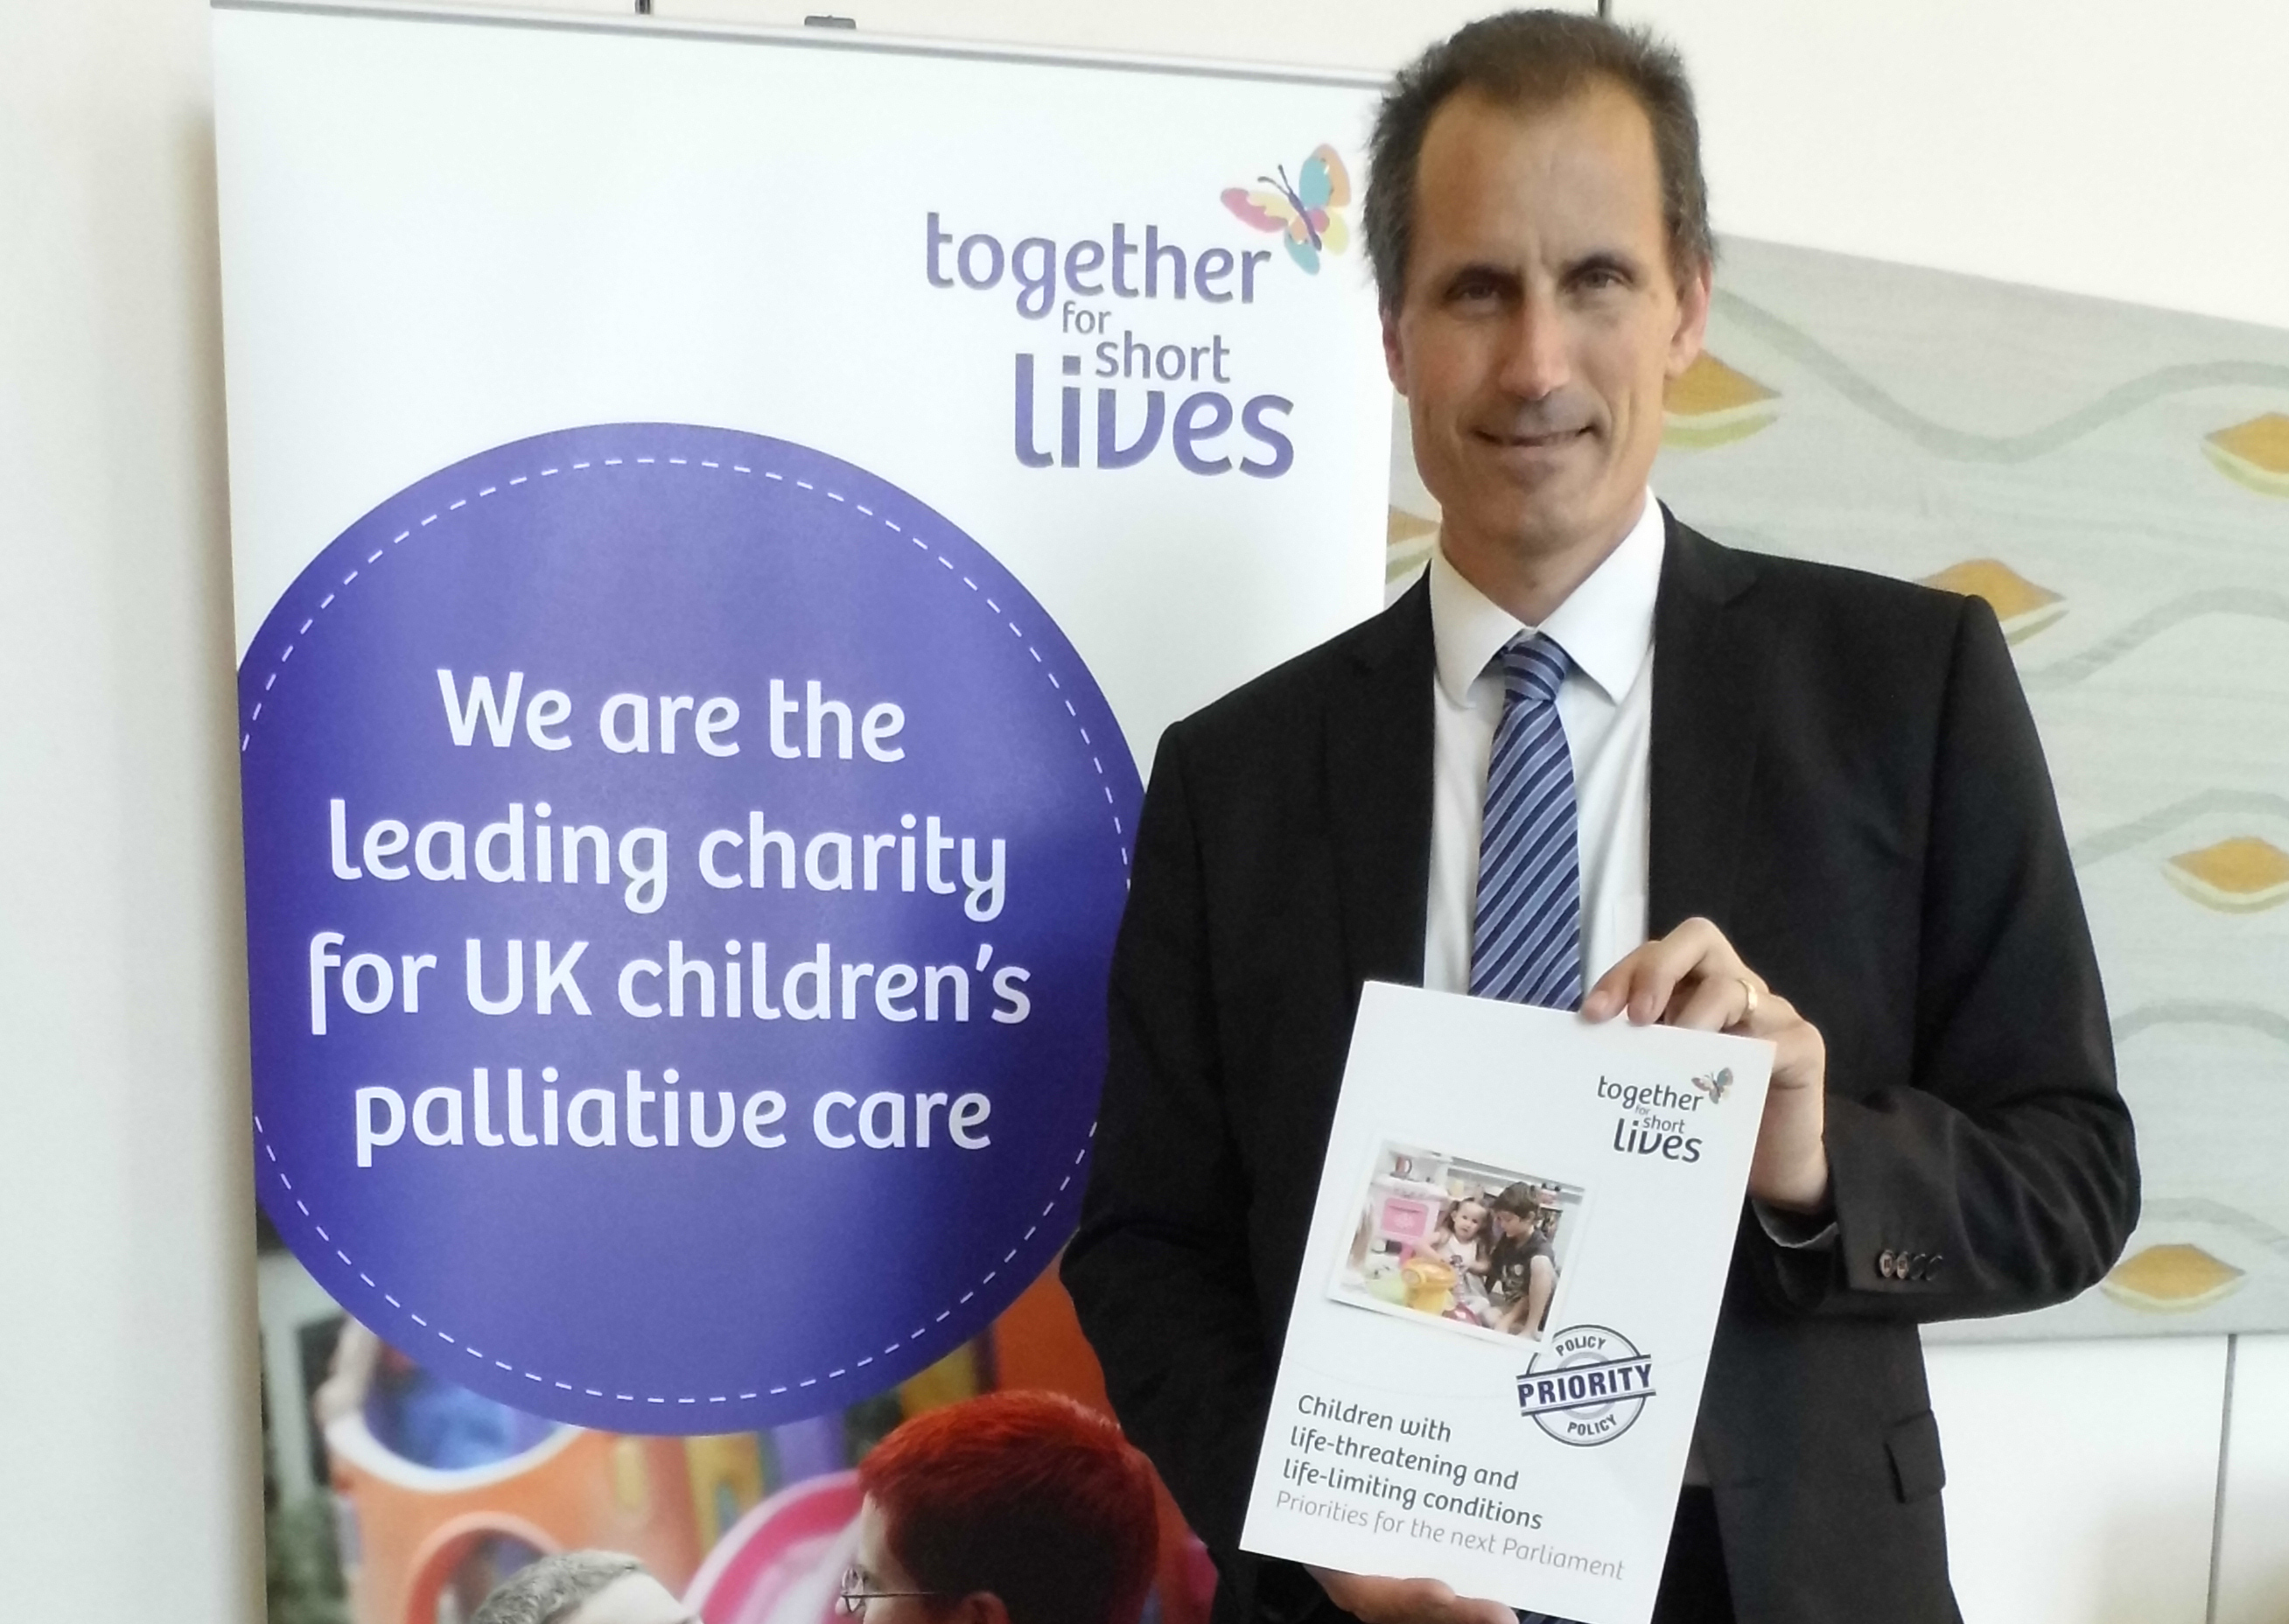 Labour MP Bill Esterson backs the Together for Short Lives campaign in Westminster.